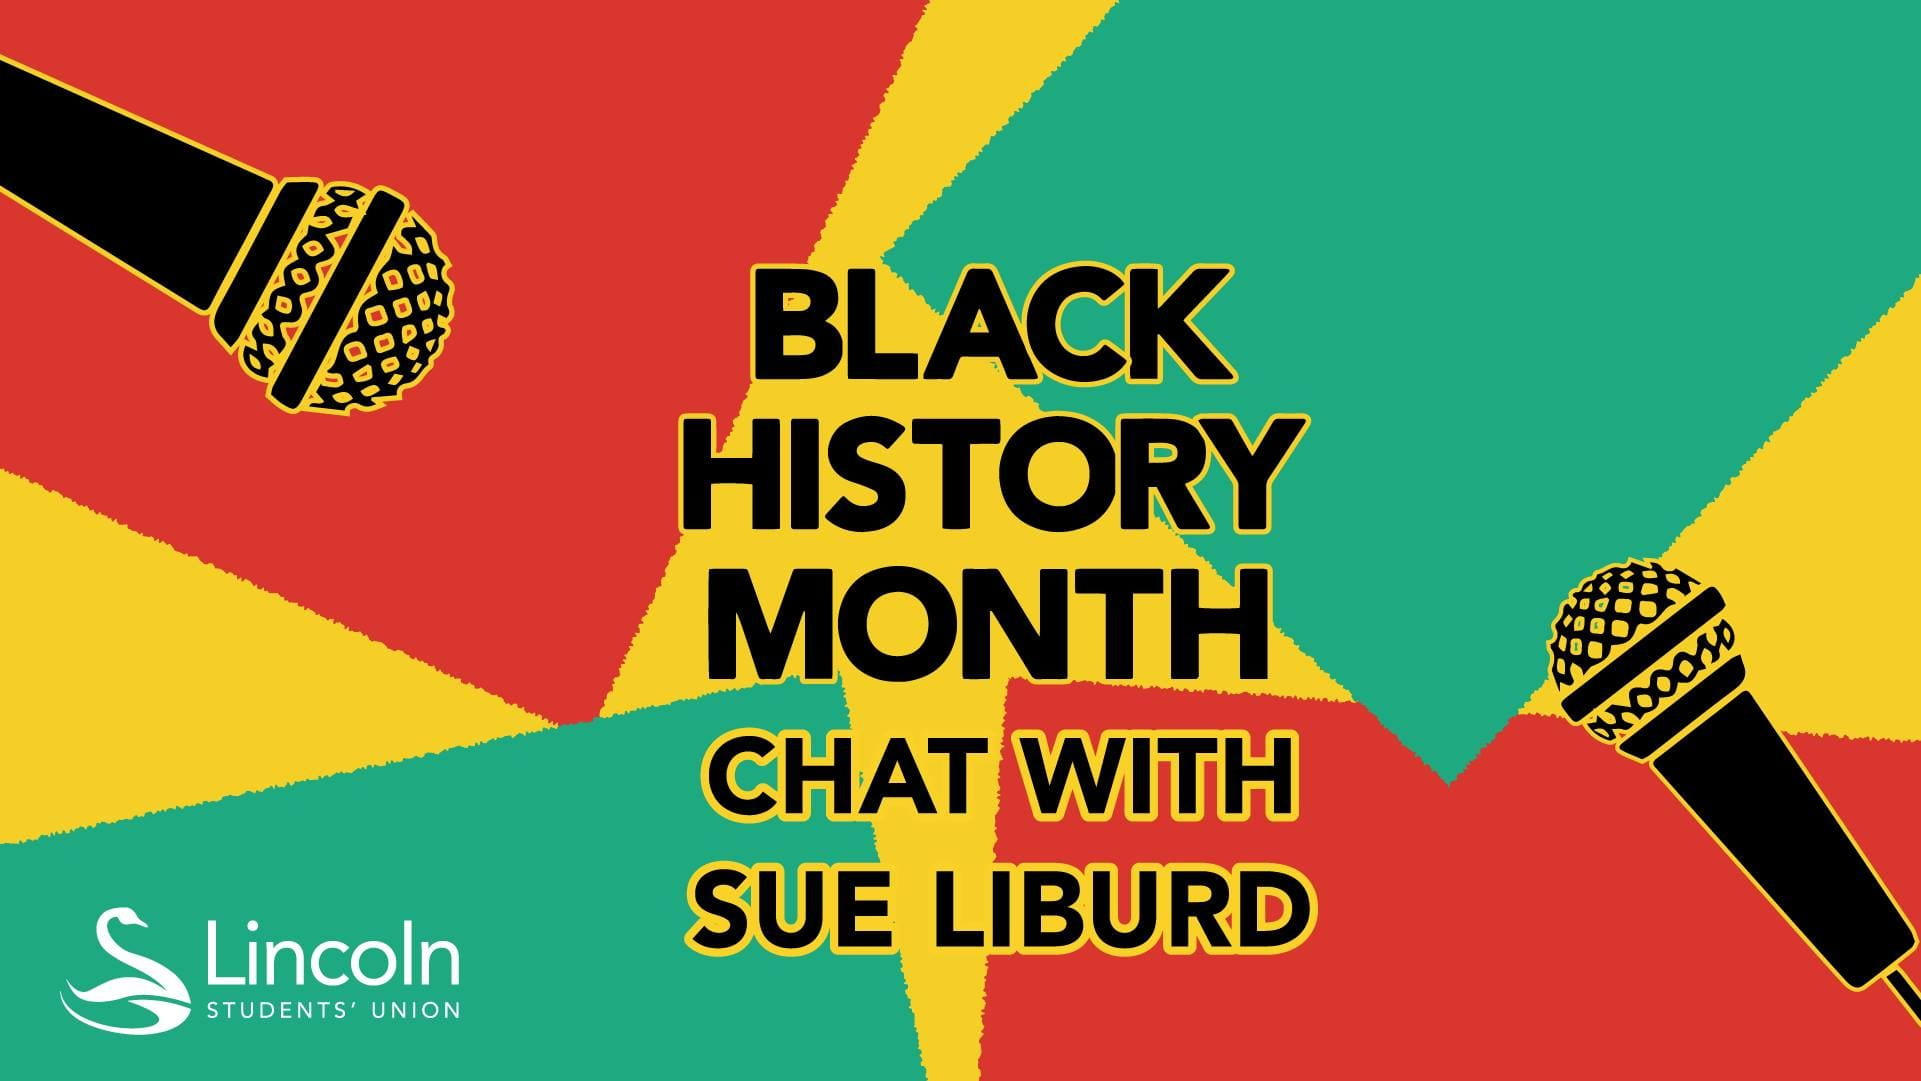 Lincoln SU's poster for Black History Month, Chat with Sue Liburd